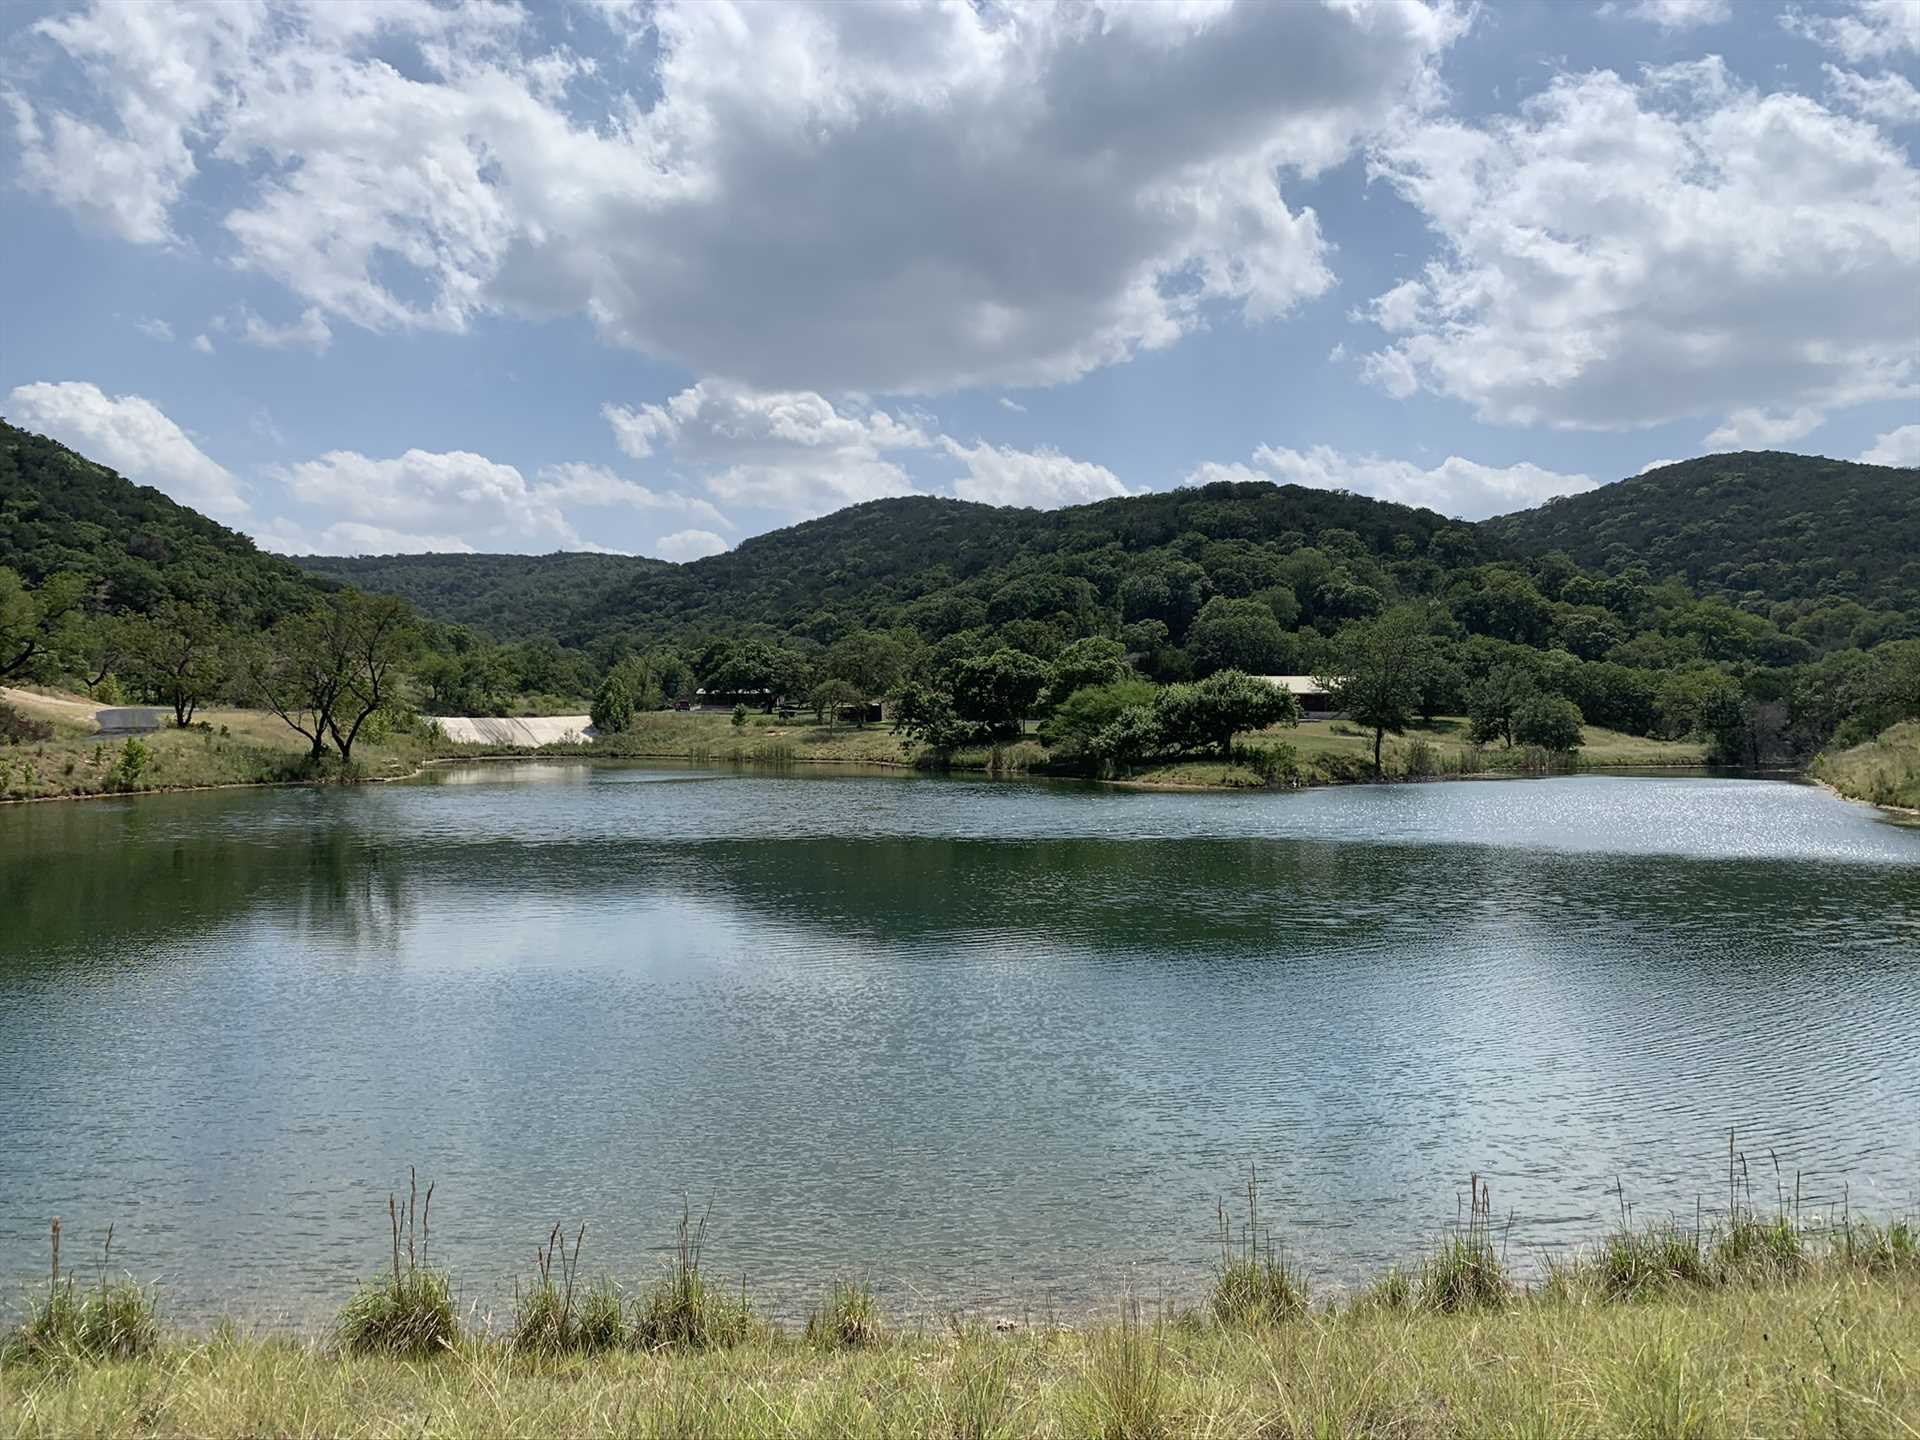 The majestic, wooded mountains of the Hill Country put on a private show for our guests-and the star-filled skies at night have to be seen to be believed!